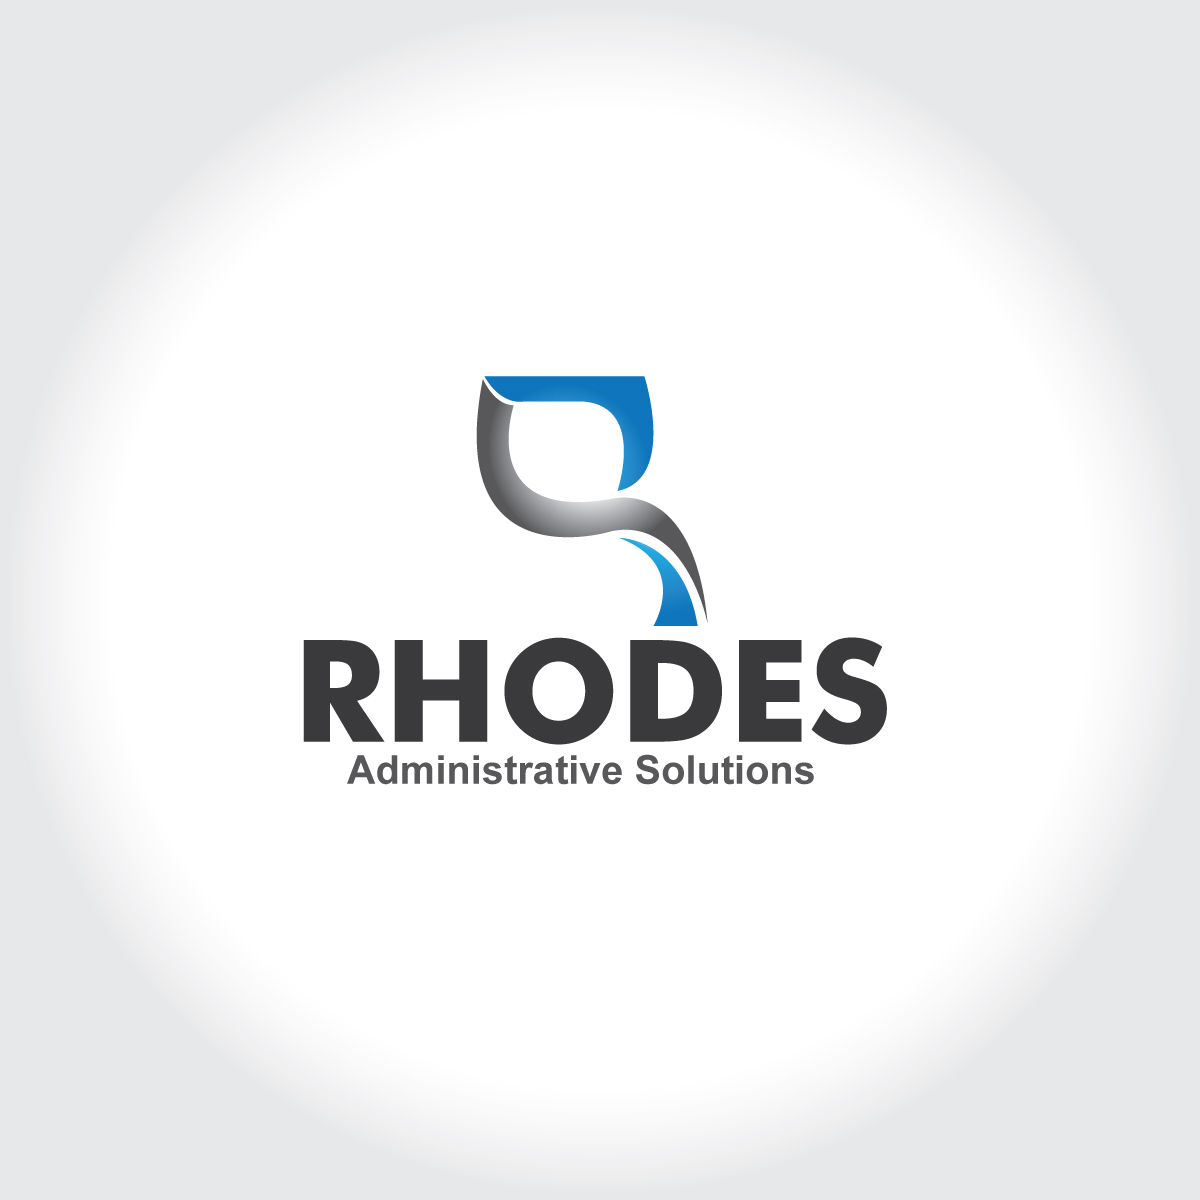 Logo Design by stormbighit - Entry No. 95 in the Logo Design Contest Rhodes Administrative Solutions.